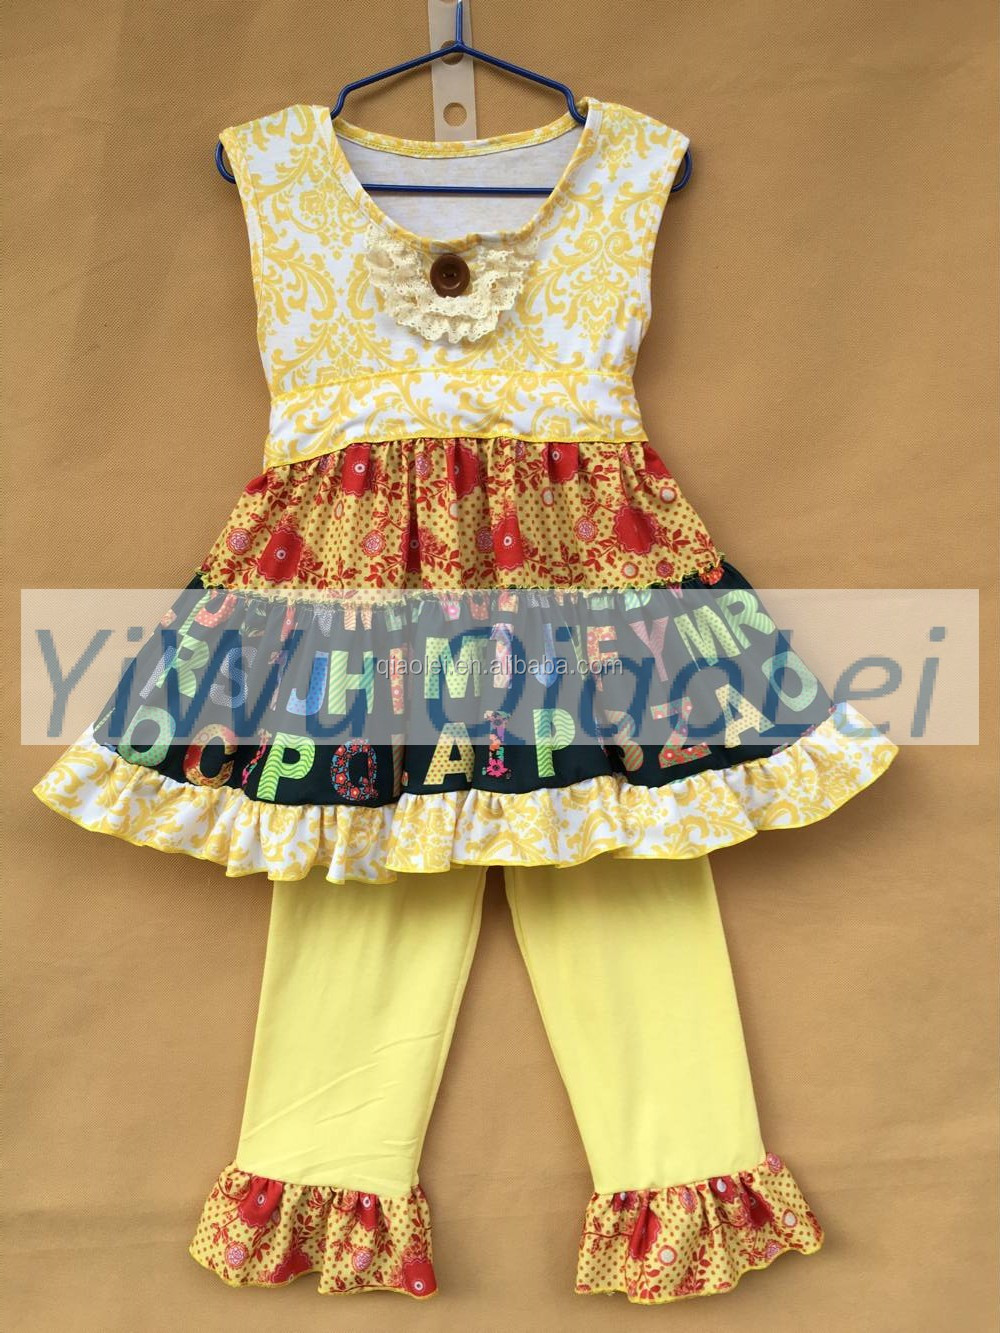 Wholesale clothing store supplies